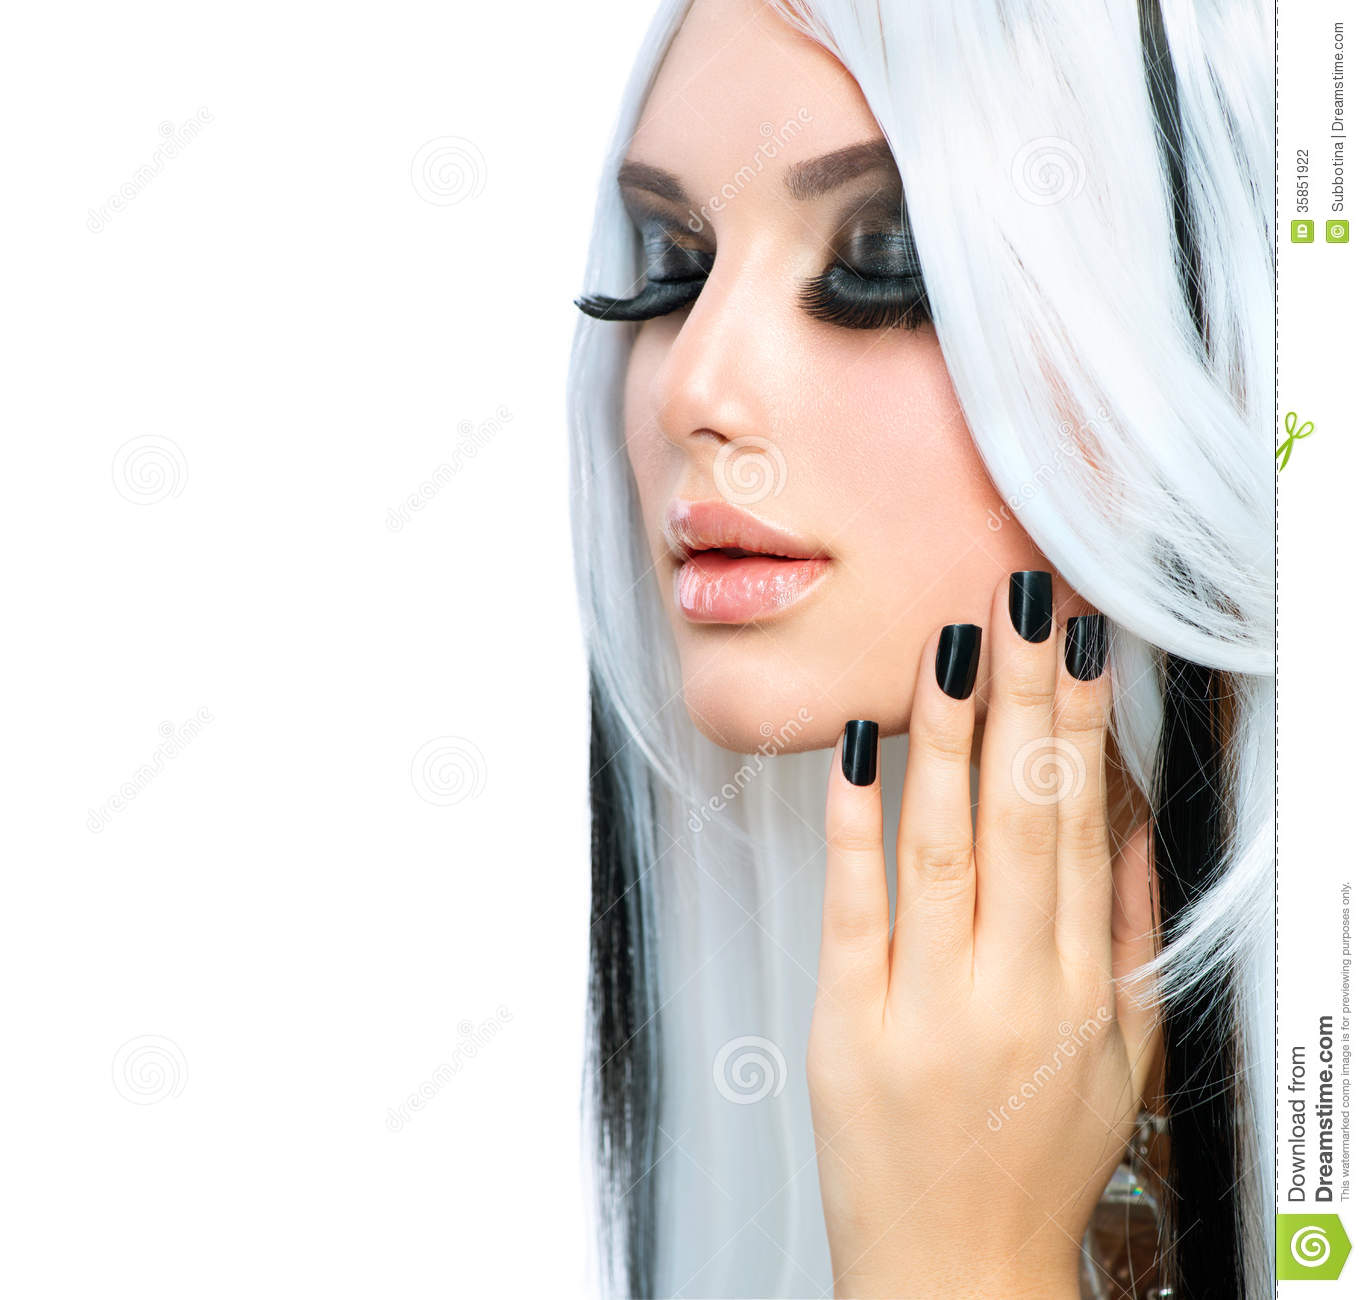 White Girl Fashion: Beauty Fashion Girl Stock Photo. Image Of Locks, Haircut